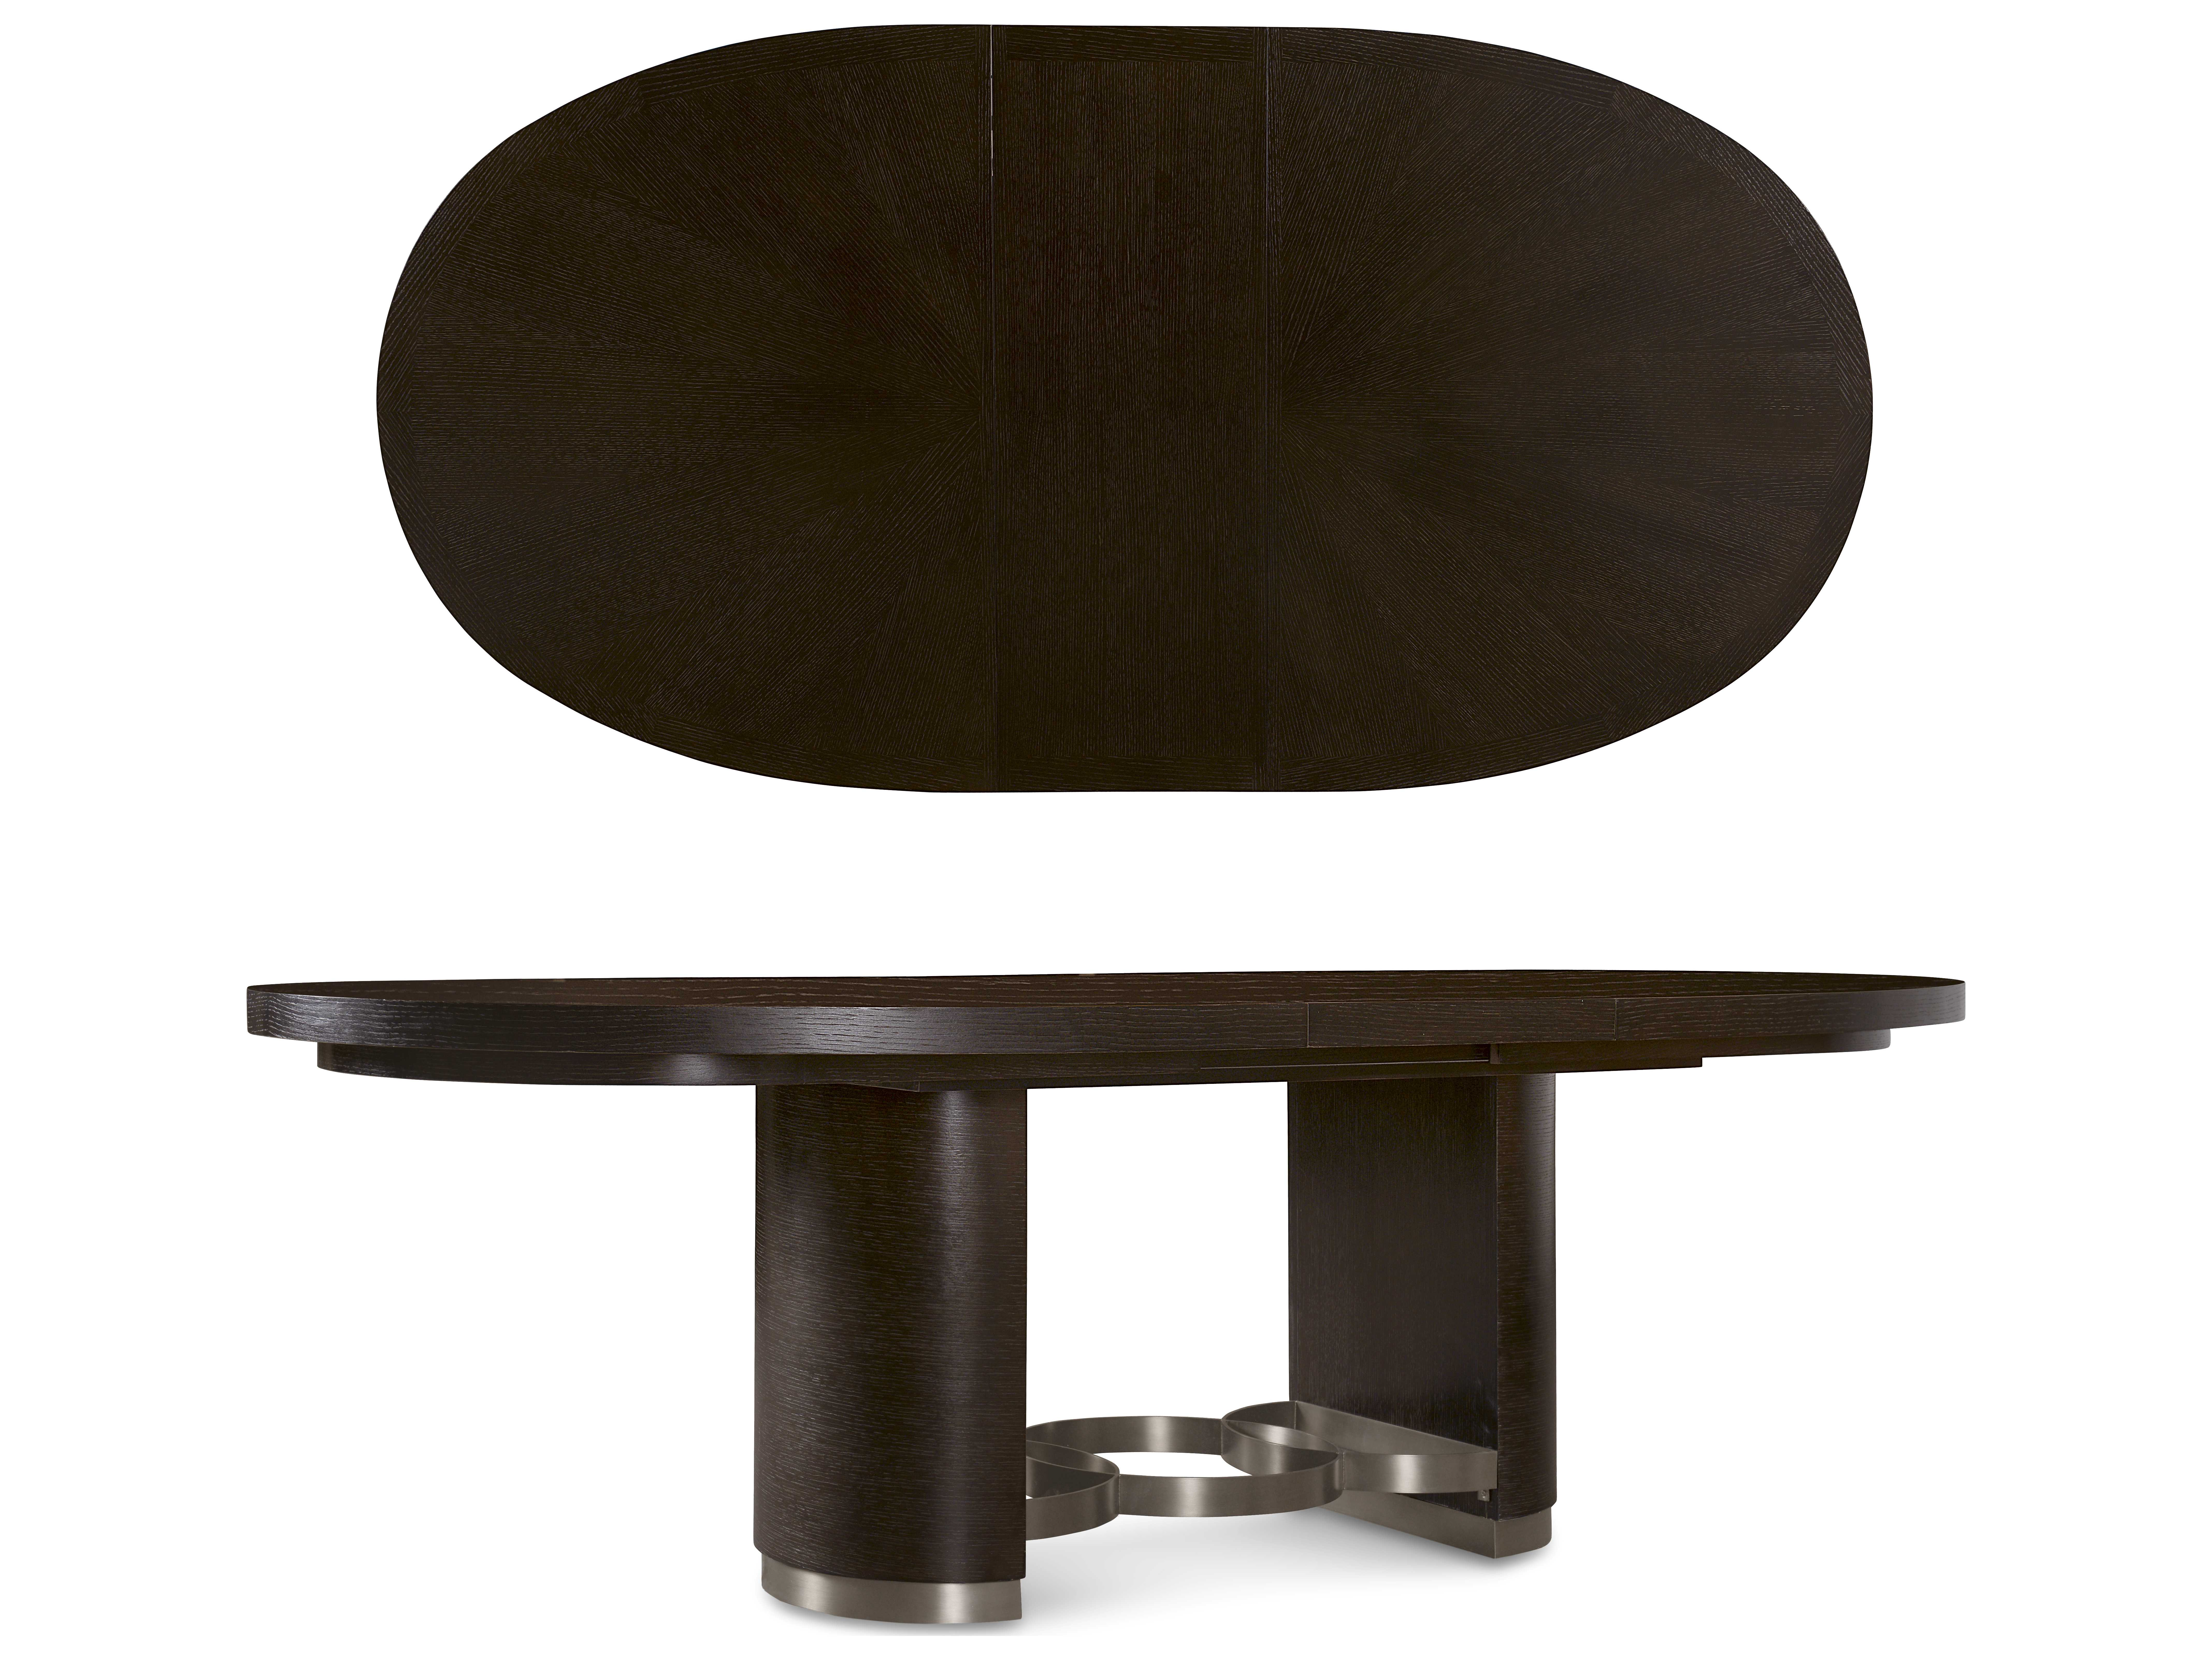 A r t furniture greenpoint oval dining table in coffee bean - A R T Furniture Greenpoint Coffee Bean 84 L X 51 5 W Oval Dining Hover To Zoom